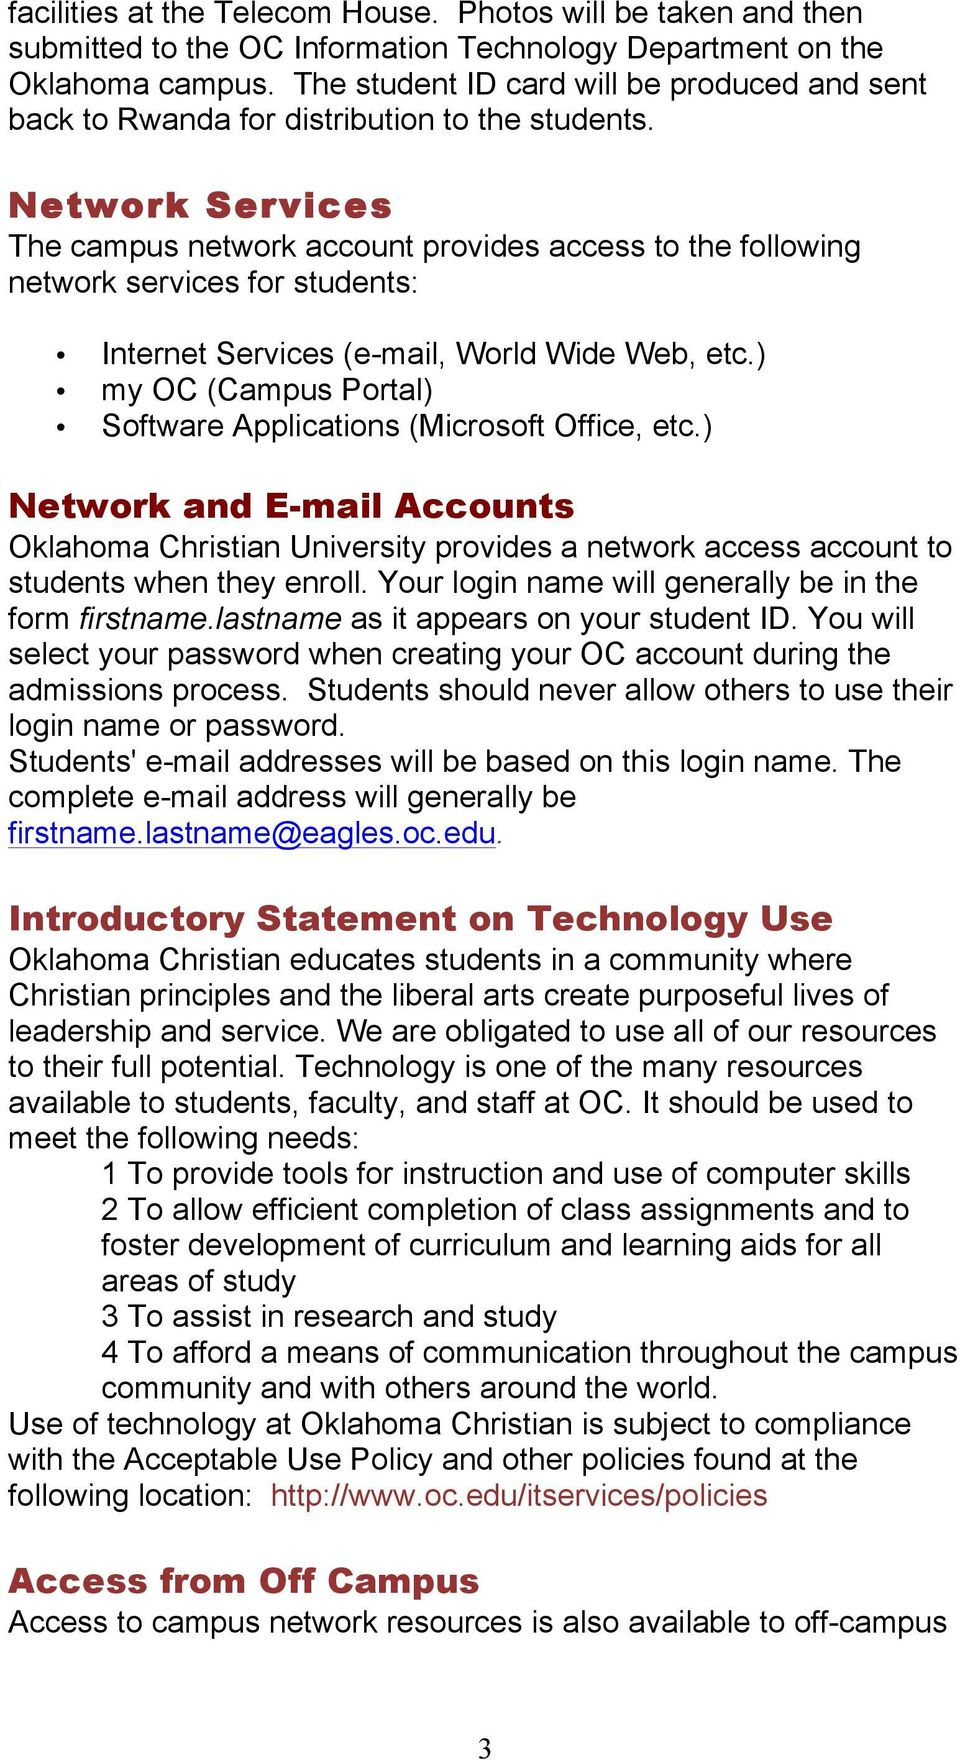 Network Services The campus network account provides access to the following network services for students: Internet Services (e-mail, World Wide Web, etc.